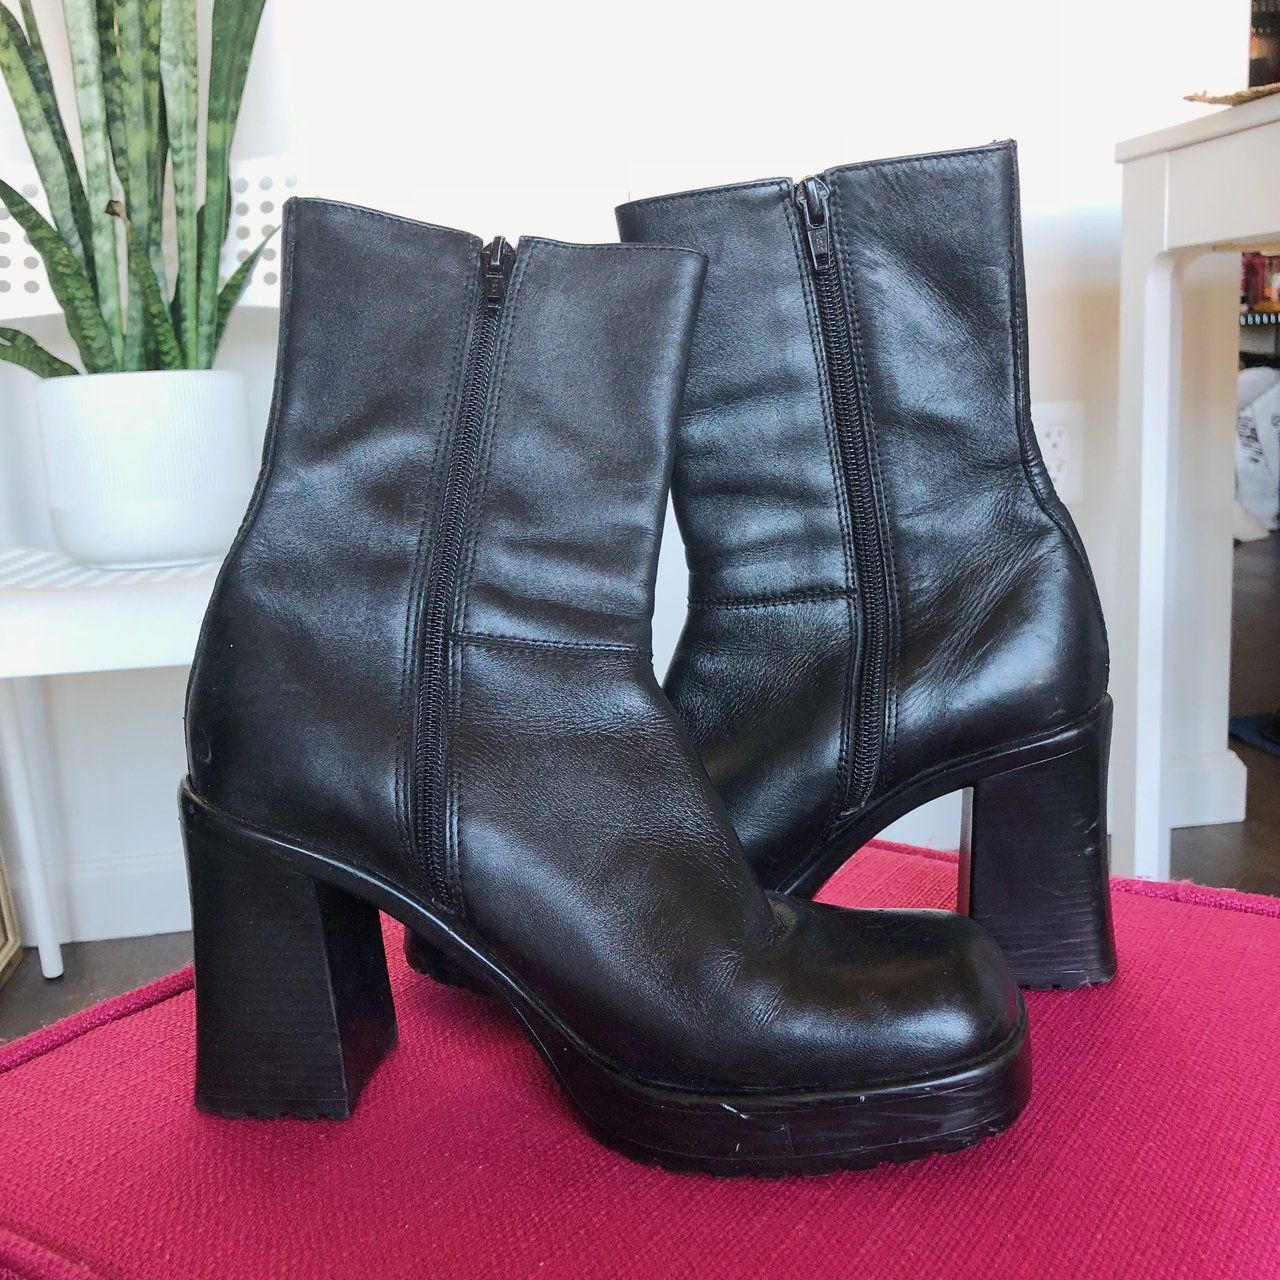 58ac8d4eab6 Listed on Depop by turtleneckgal | wants | Chunky heels, Boots, Depop